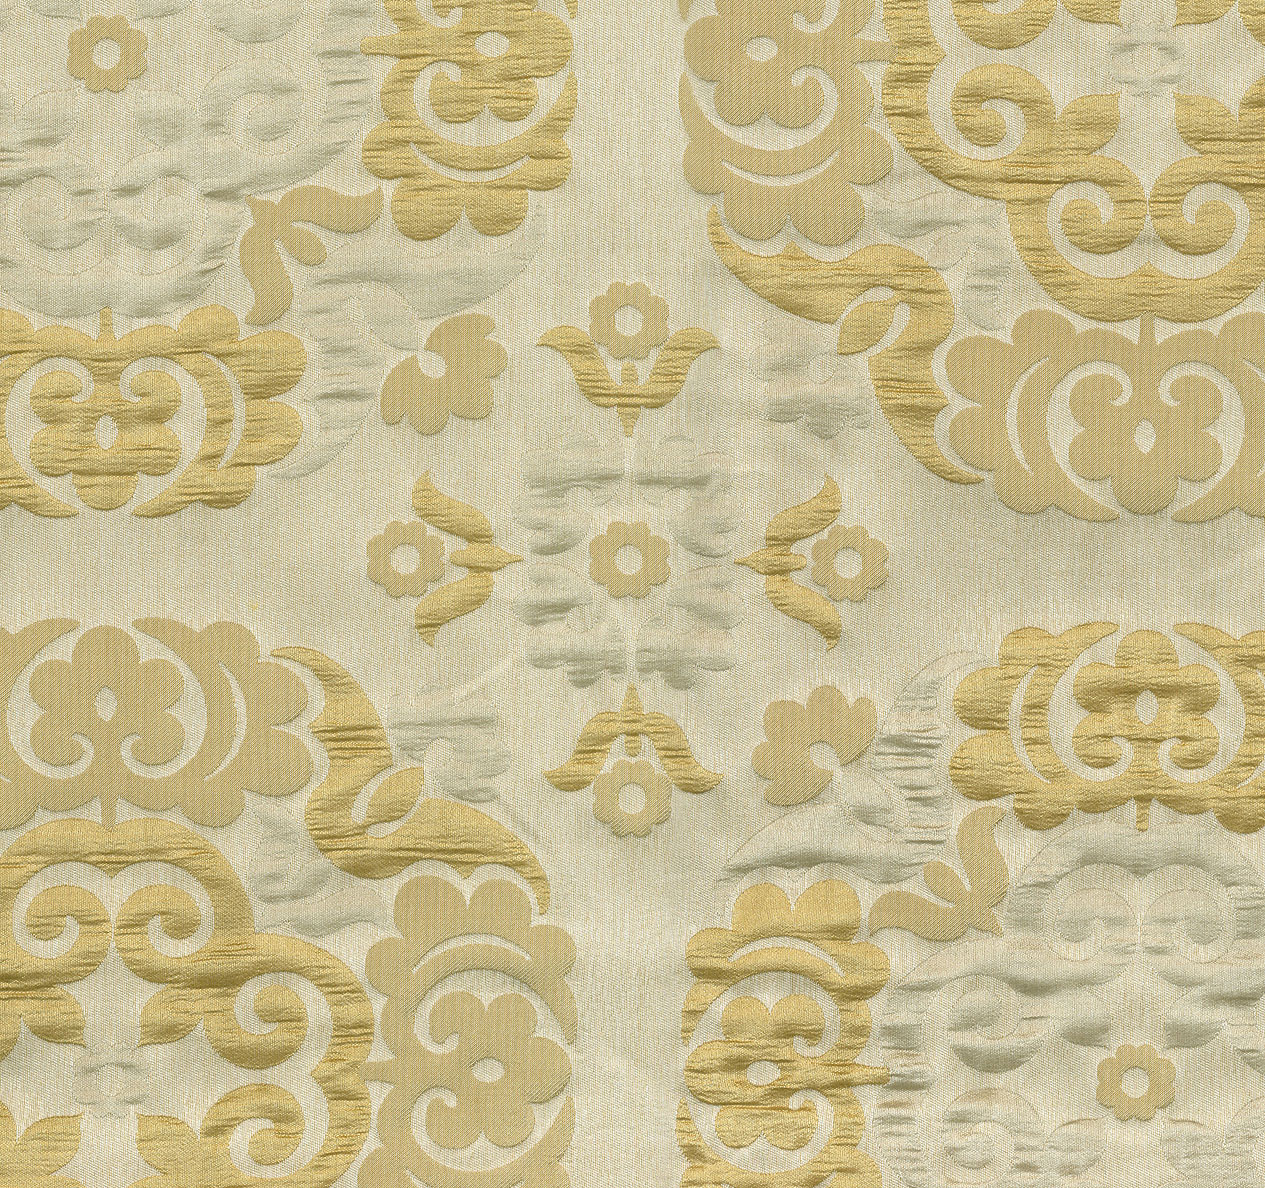 Home Decor 8\u0022x8\u0022 Fabric Swatch-IMAN Home Marakkesh Mica